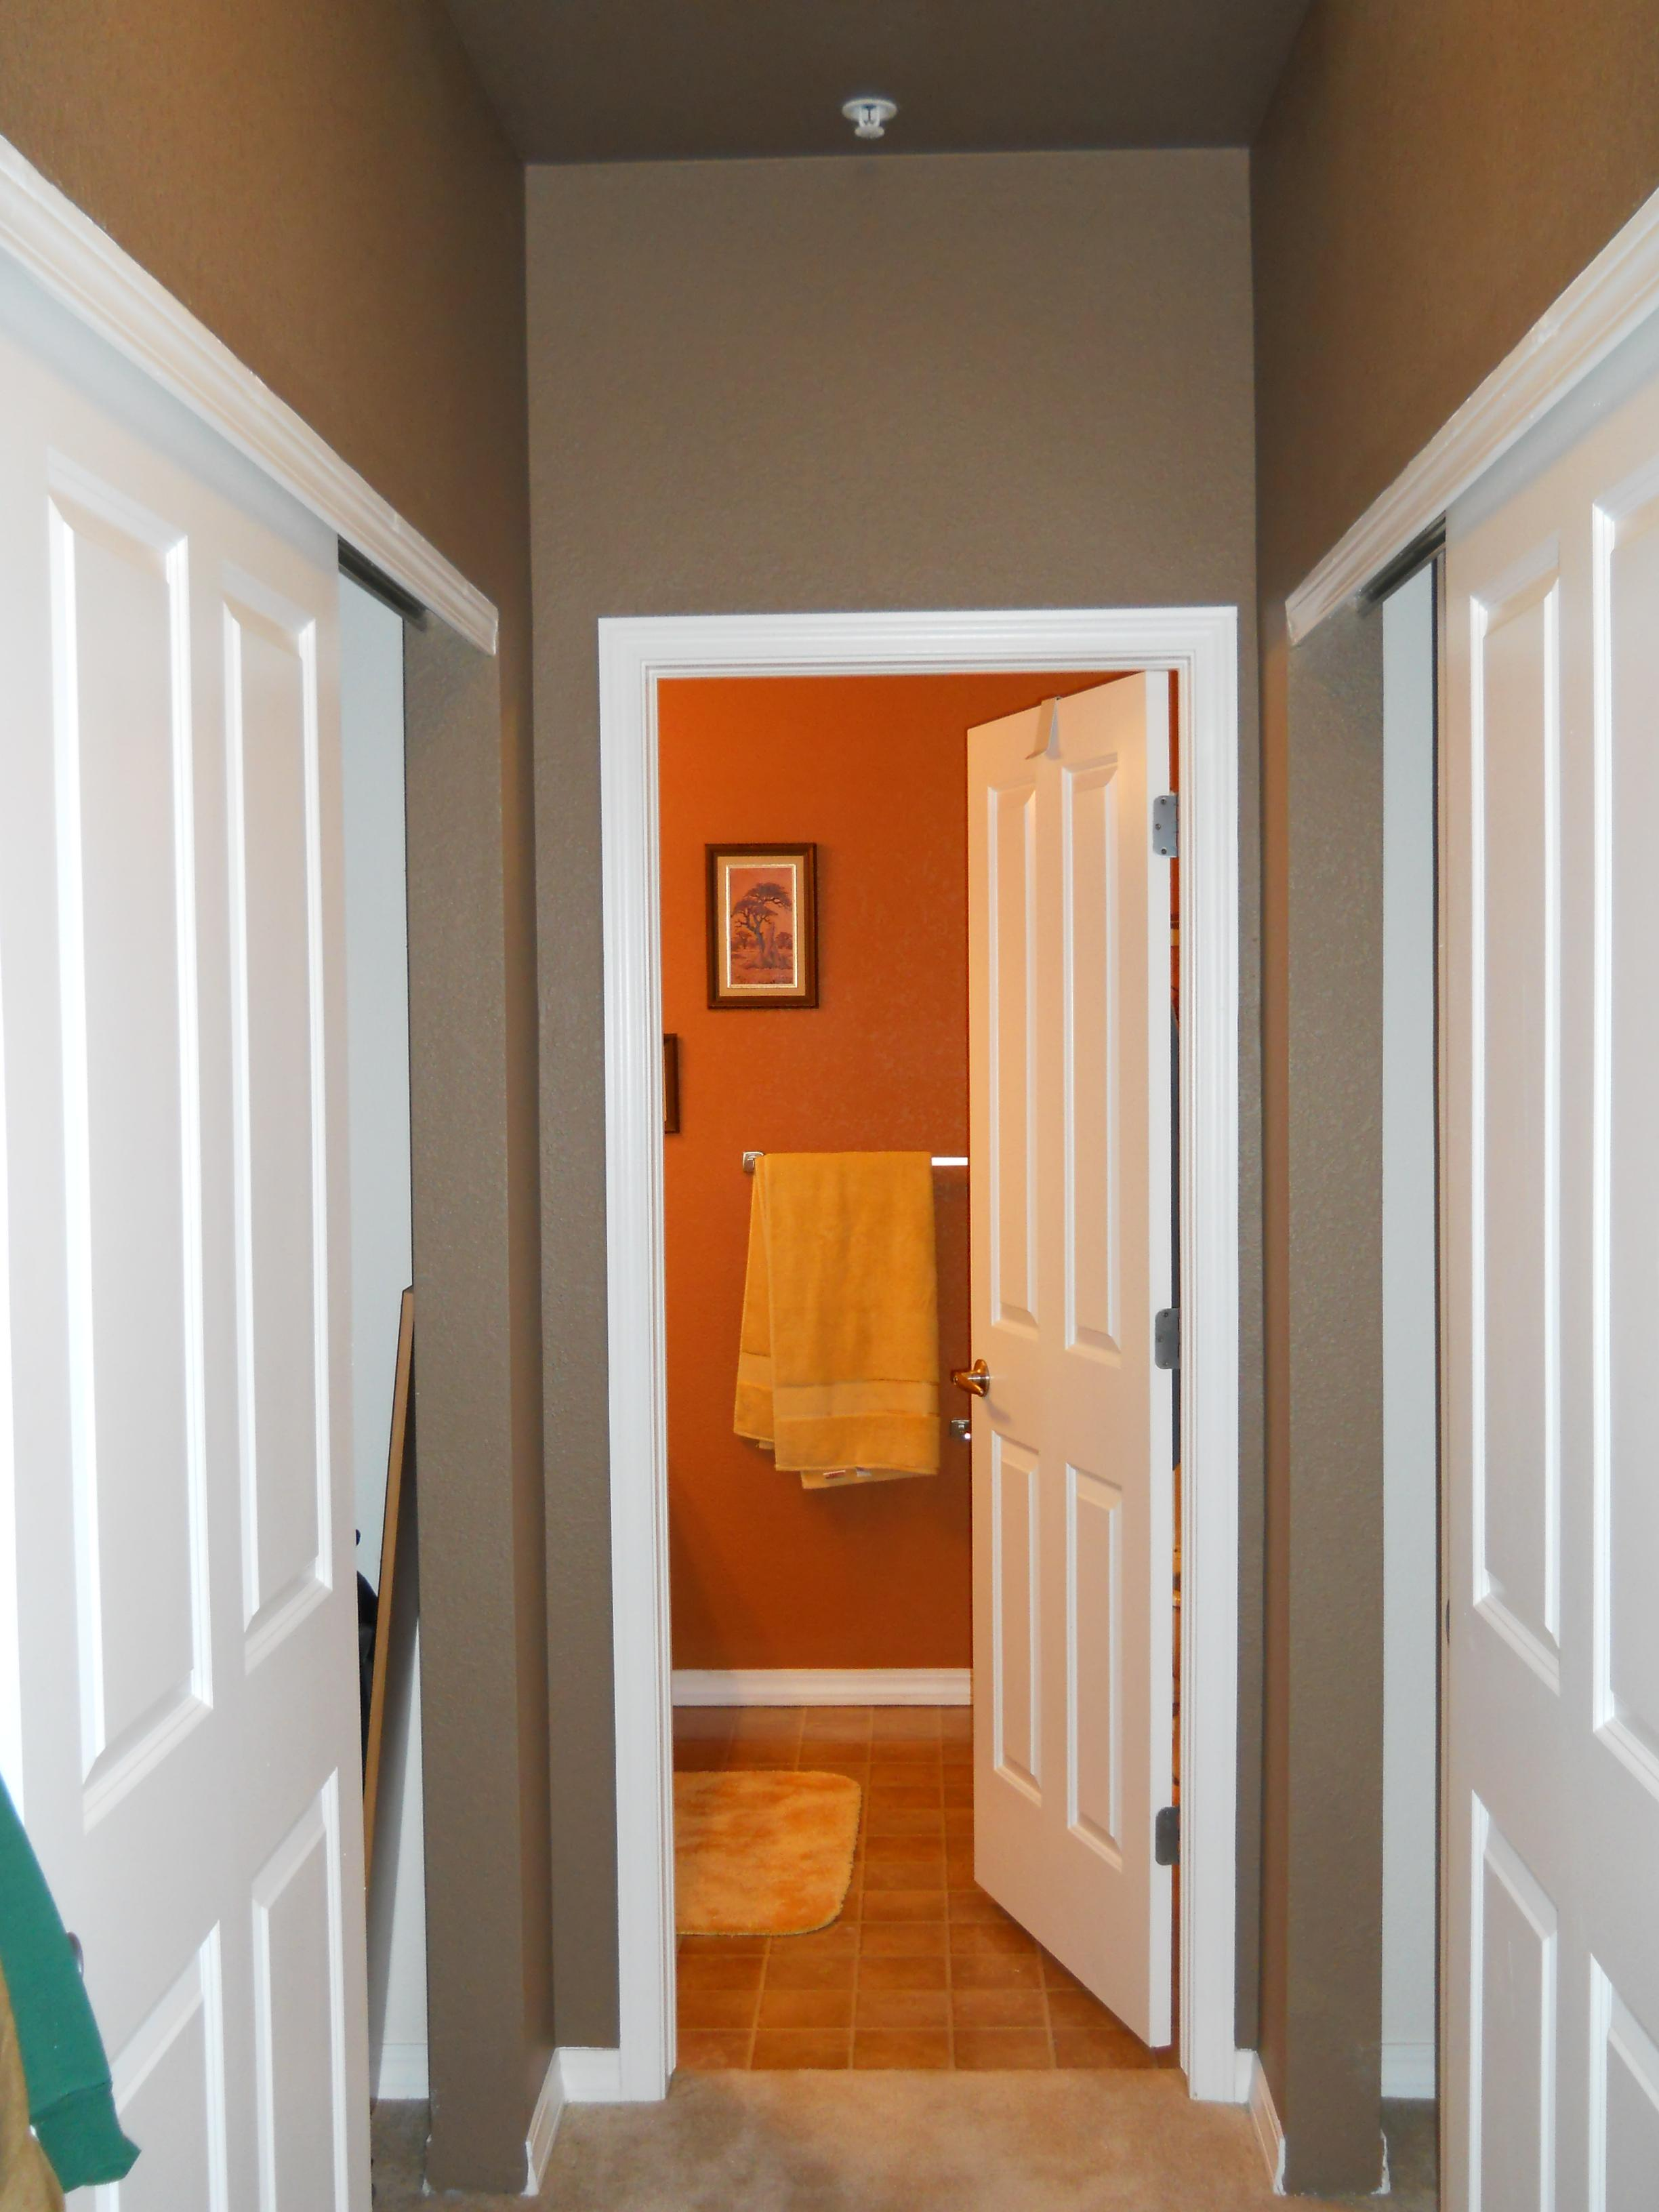 7 ways increasing home values eco paint inc